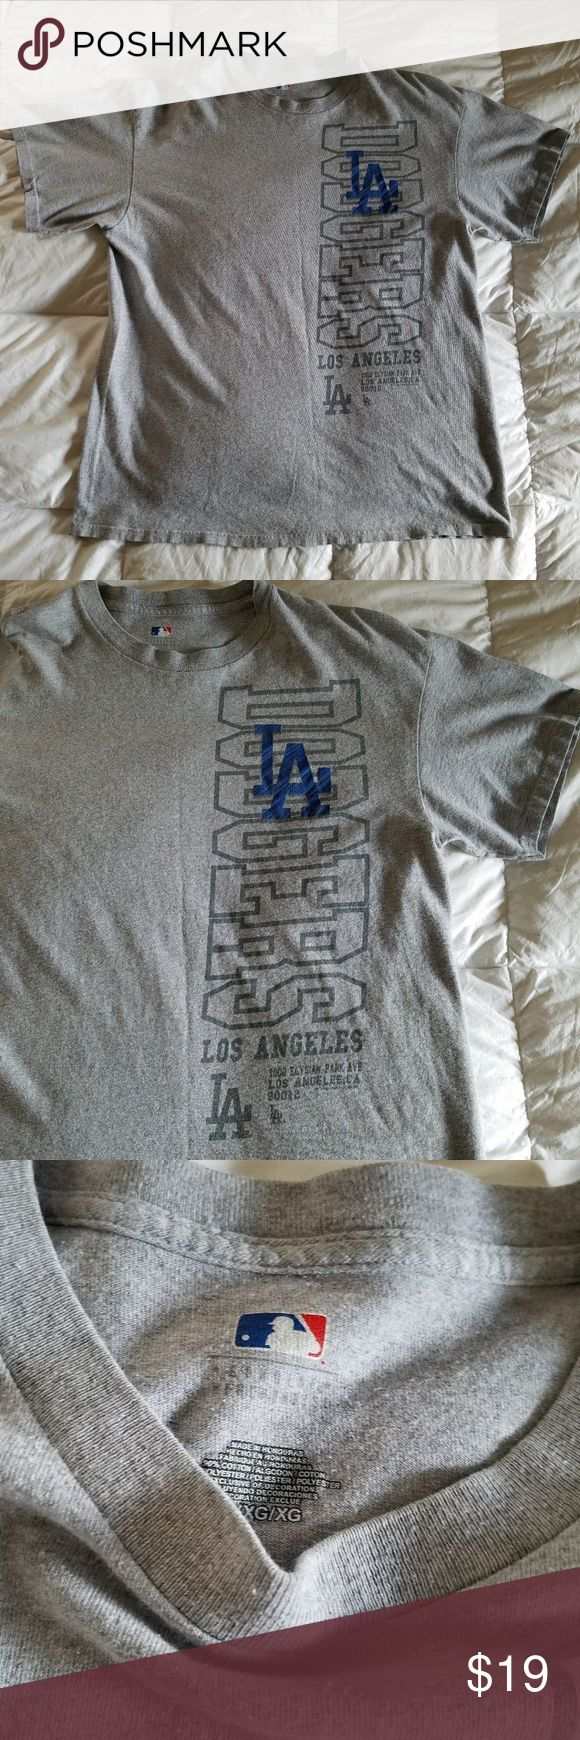 Los Angeles Dodgers Shirt XL Stadium T-Shirt MLB Excellent Pre-owned condition. From clean, Non-smoking home. Genuine MLB merchandise LA Dodgers Stadium Address Graphic T shirt. MLB Shirts Tees - Short Sleeve